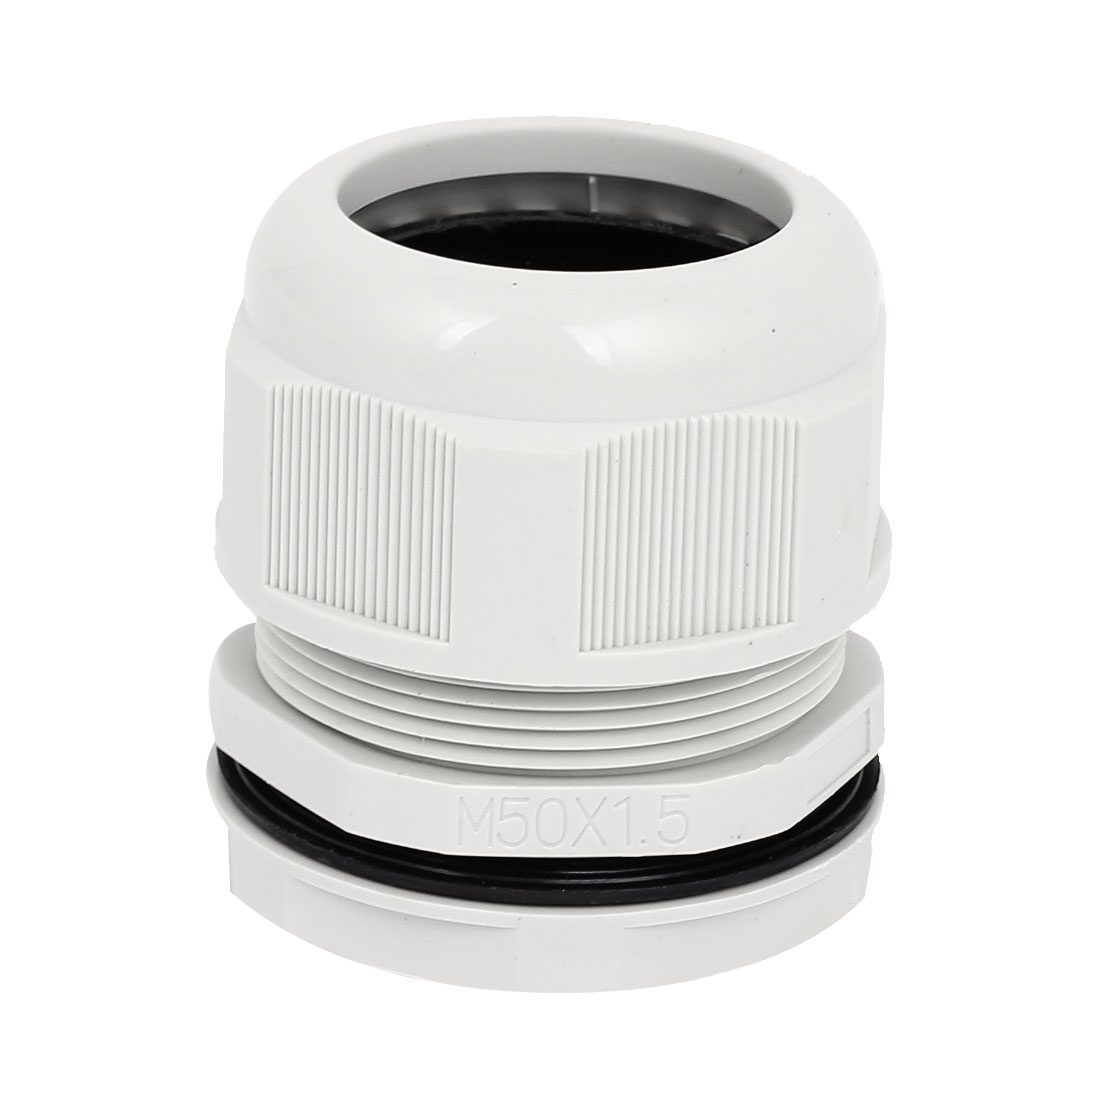 M50x1.5 50mm Thread OD Waterproof Cable Gland Cord Wire Fixing Connect Connector Joints White